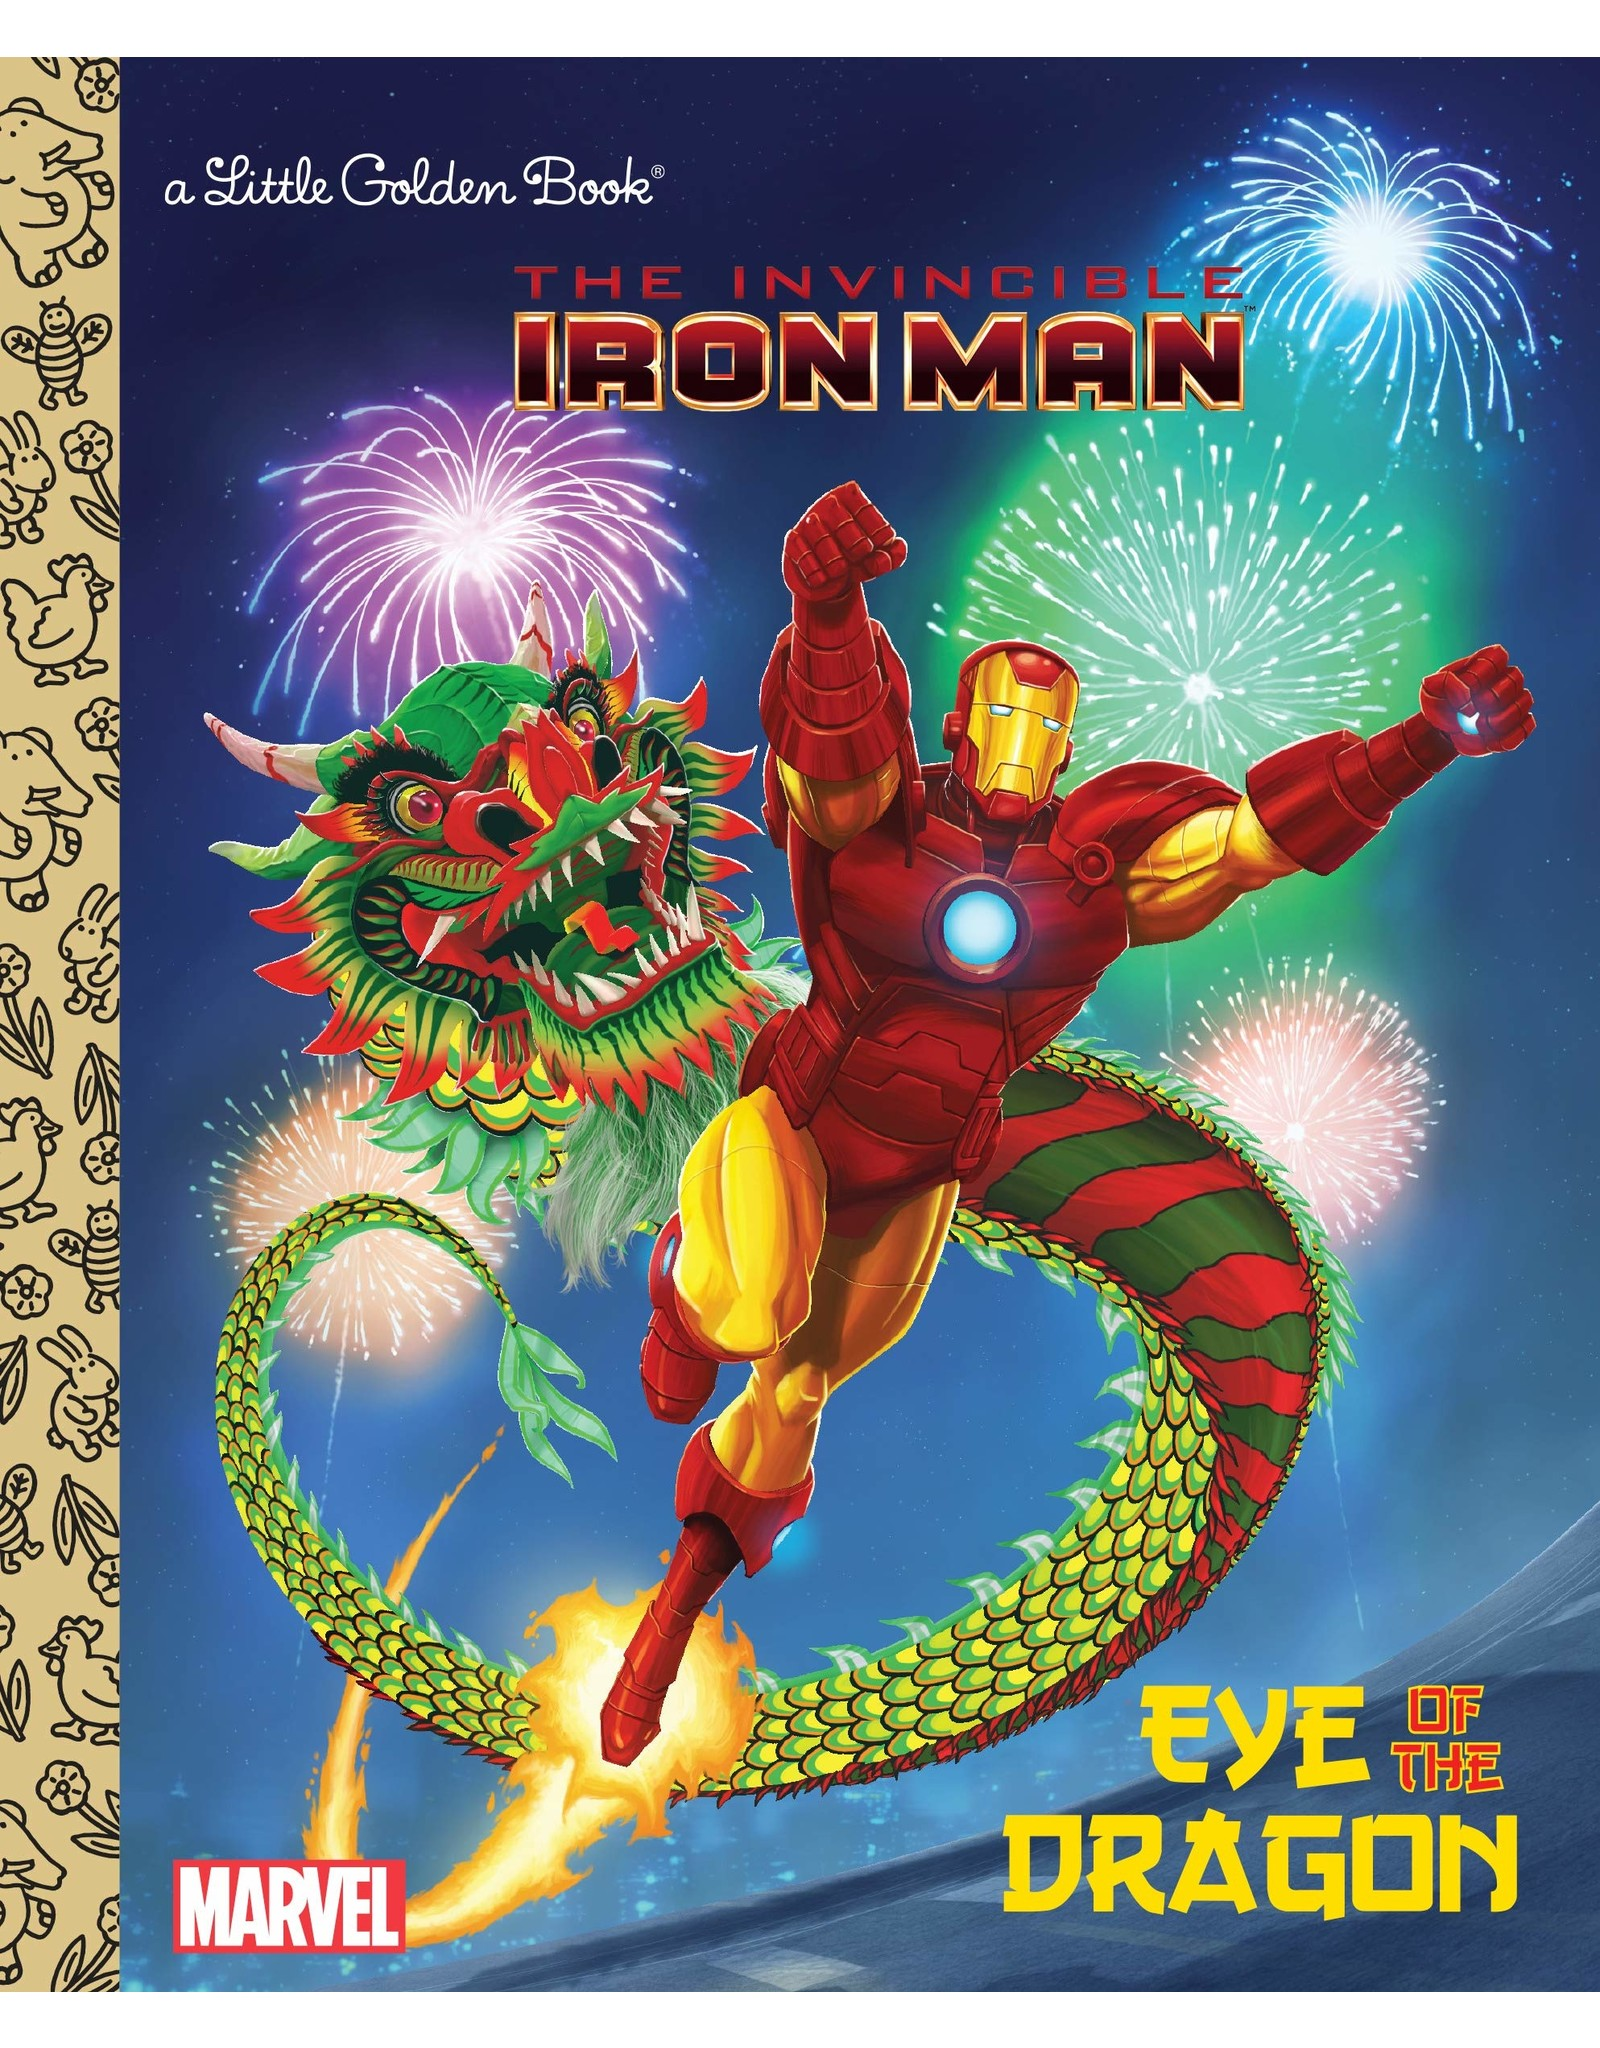 EYE OF THE DRAGON (MARVEL: IRON MAN) LITTLE GOLDEN BOOK